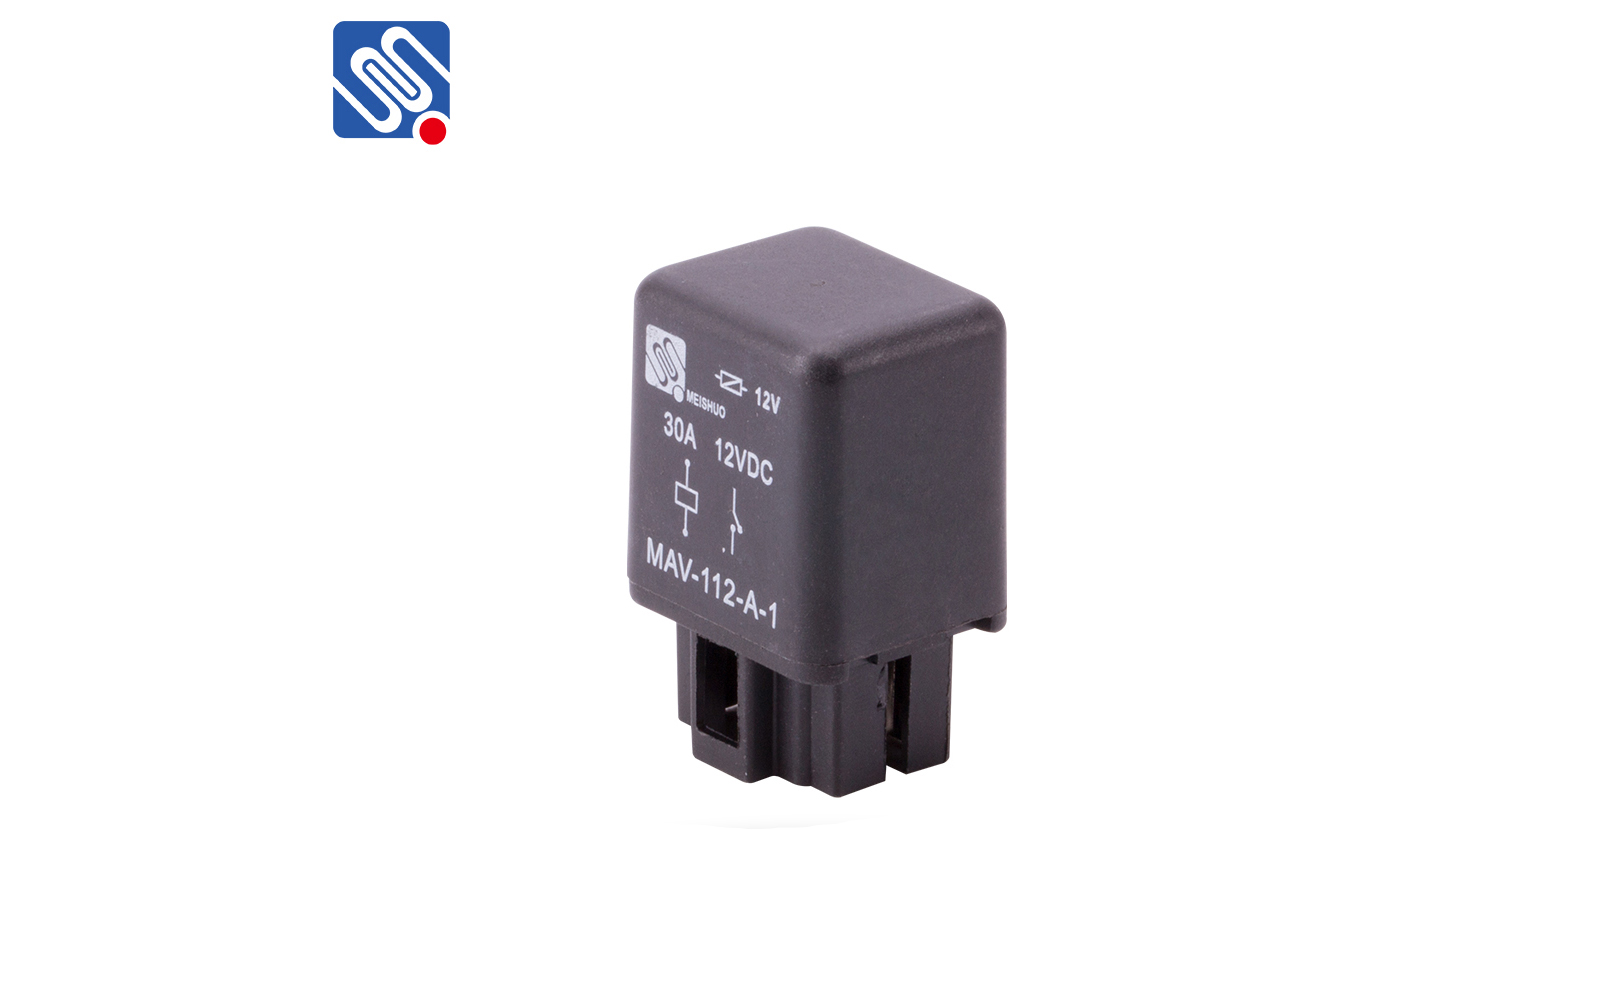 4 pin 30 amp 12 volt relay MAV-112-A-1_meishuoen  Prong Volt Relay Wiring on